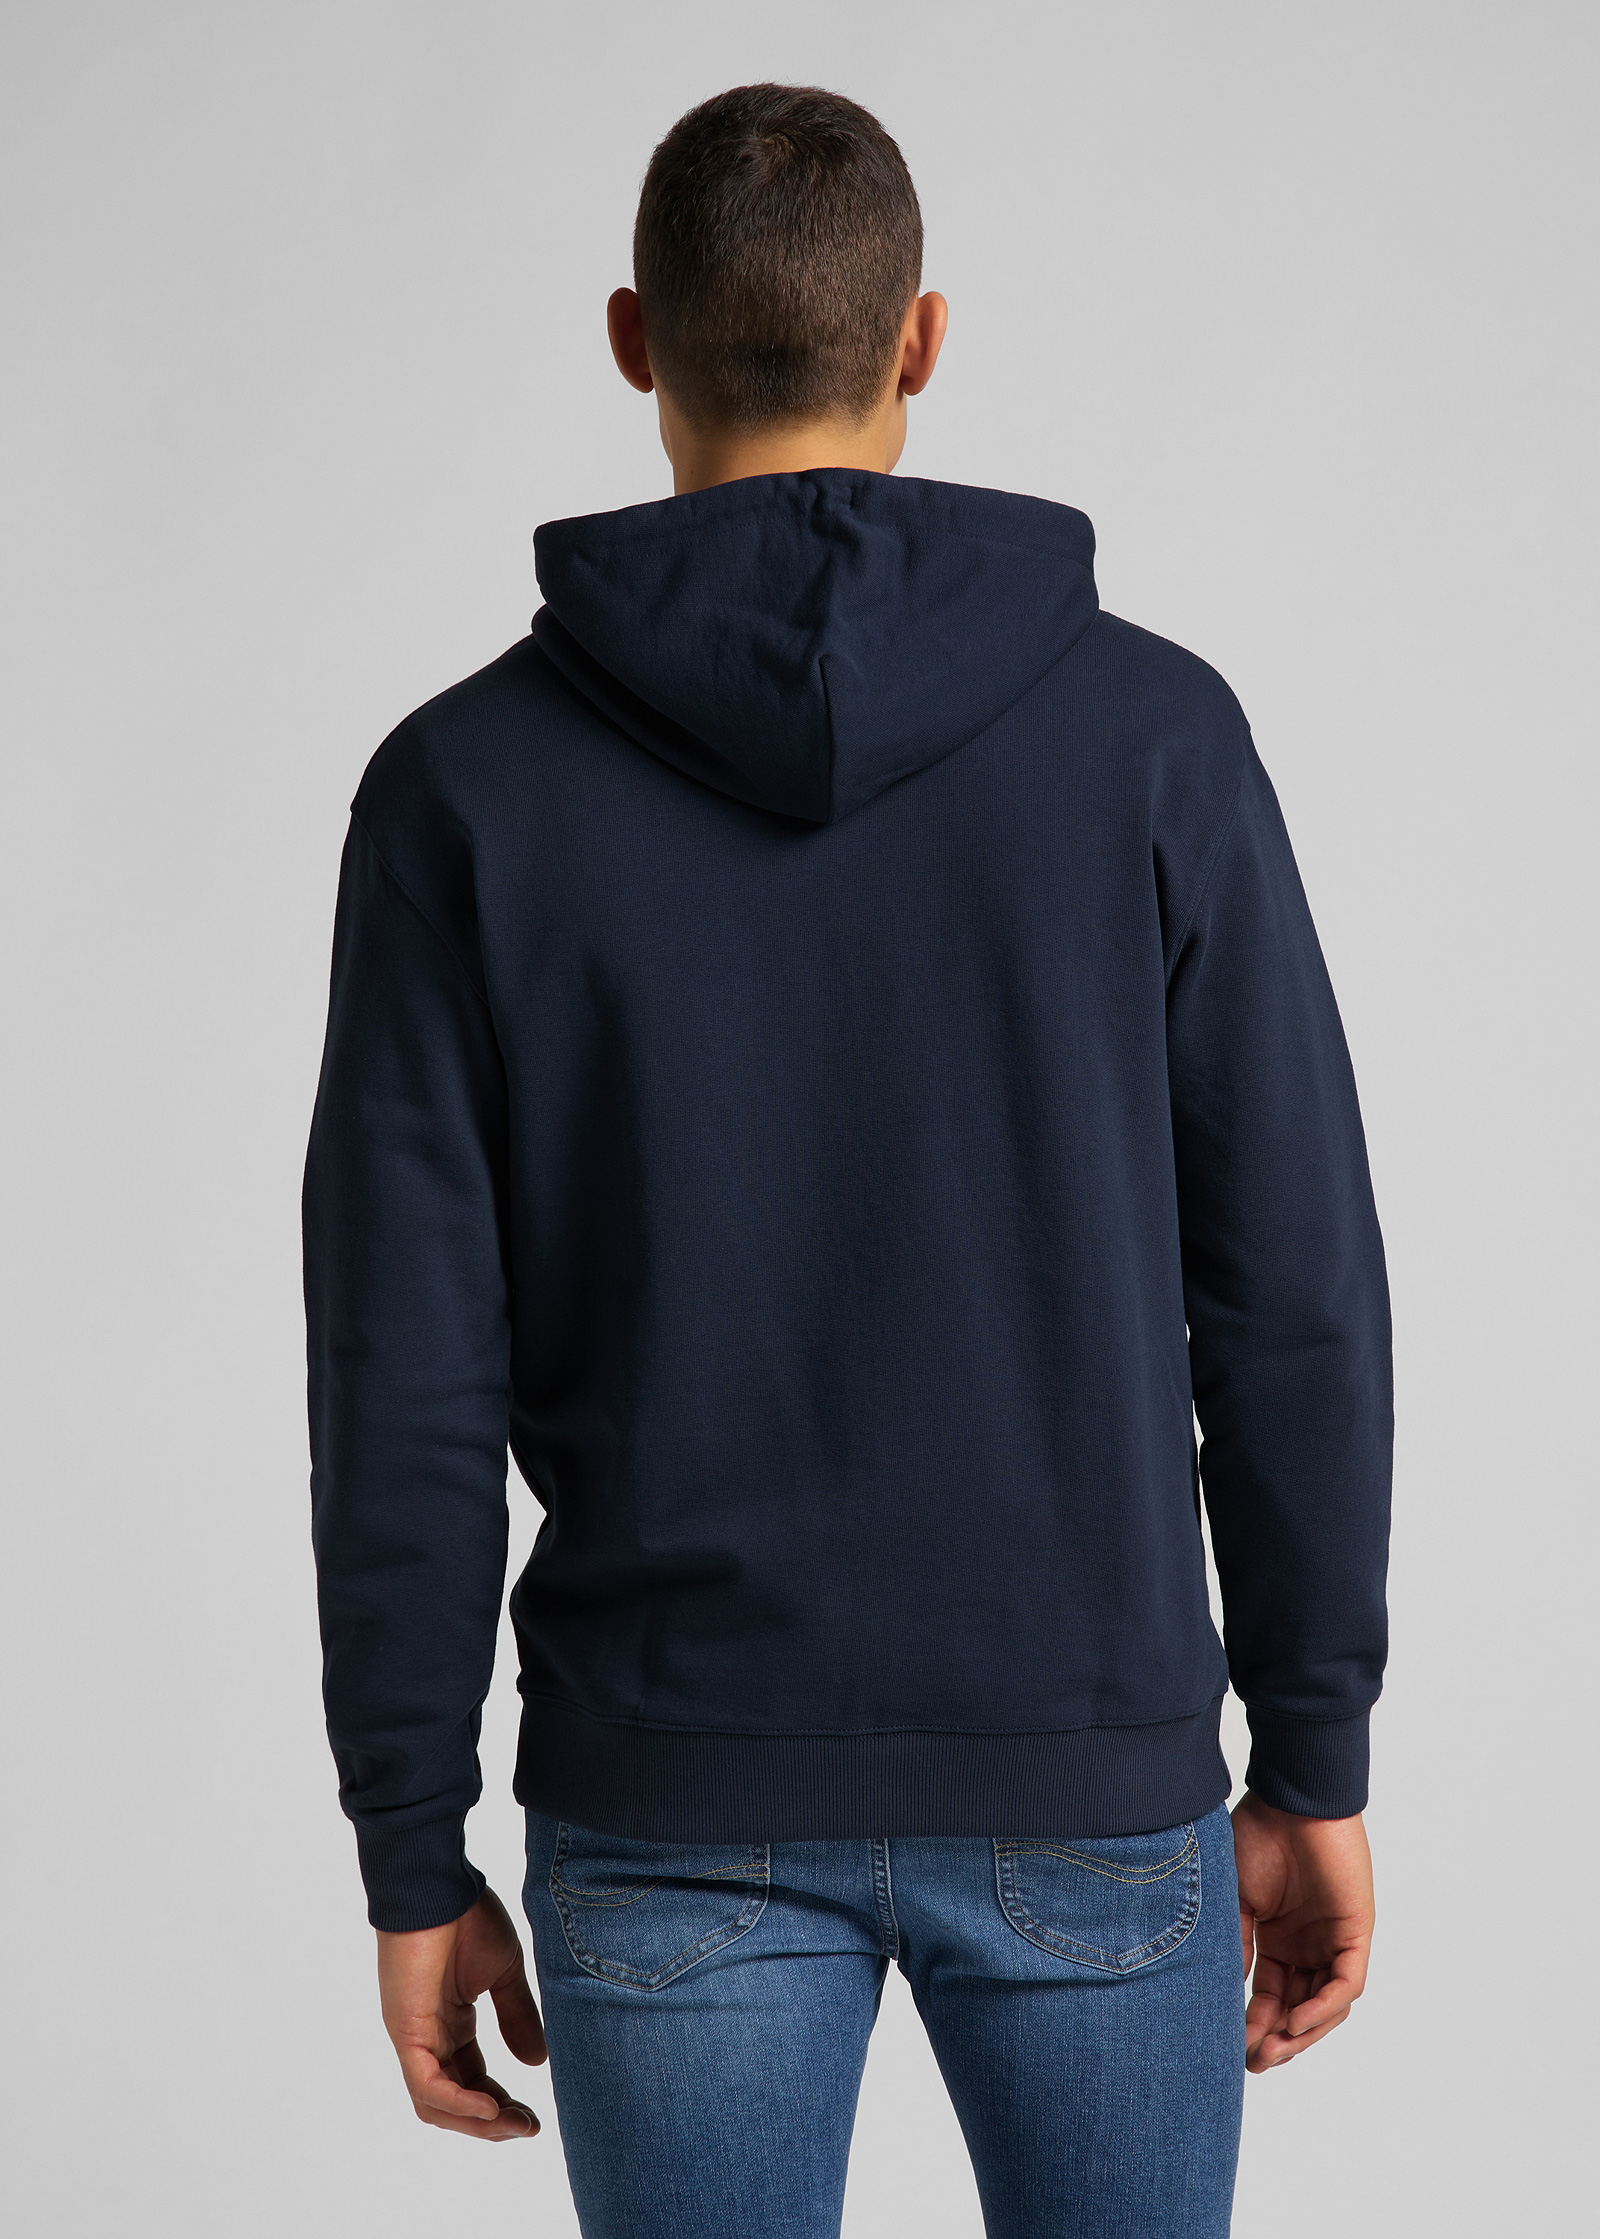 Lee® Basic Zip Throuh Hoody - Navy - elements